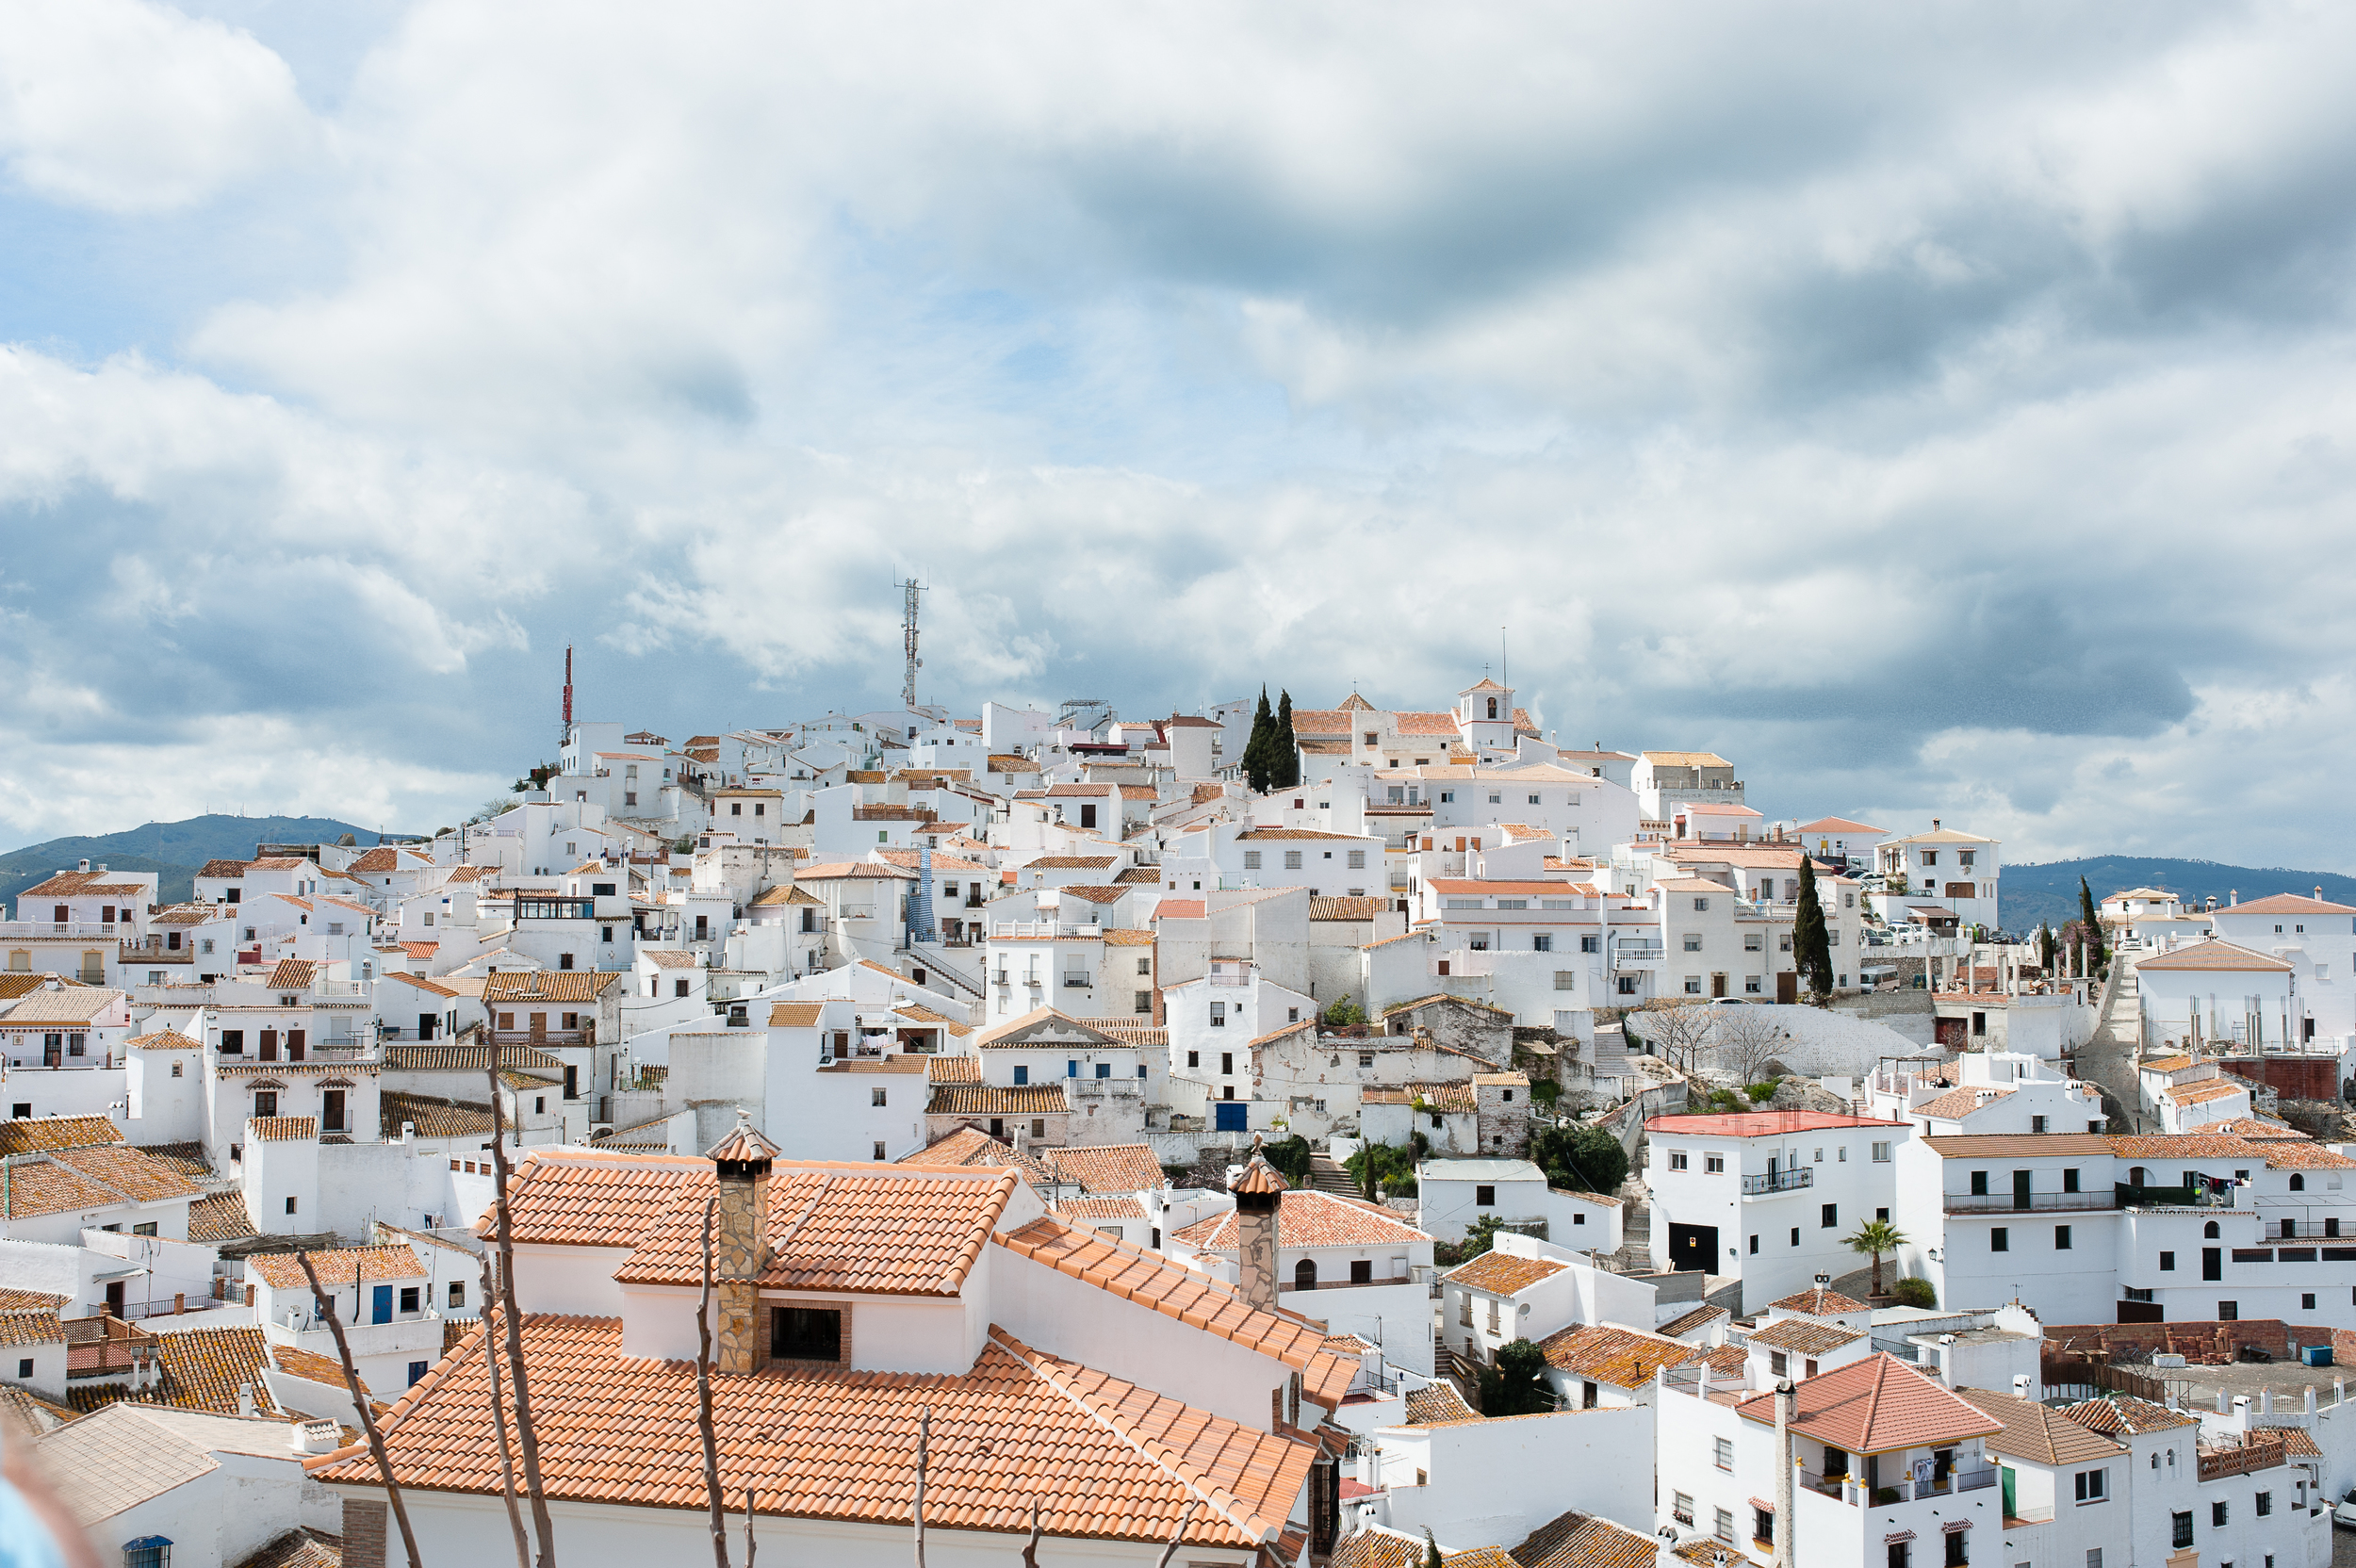 Comares hill town from the top.